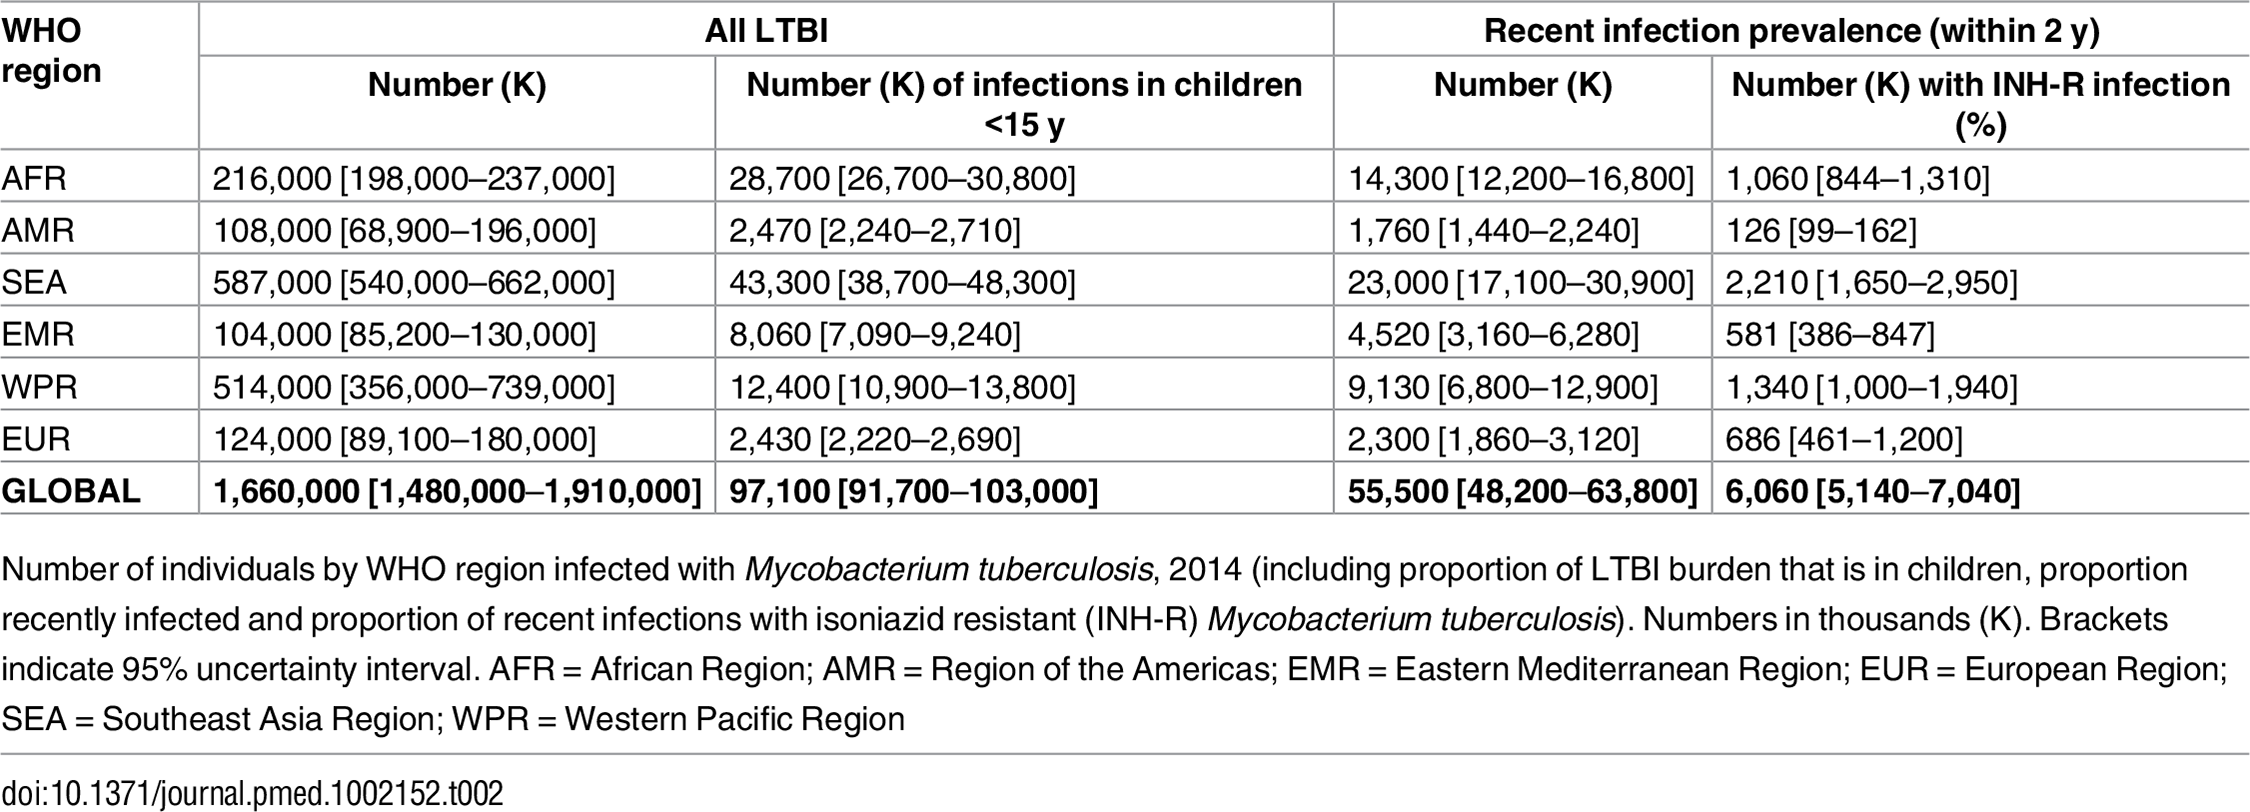 Number (thousands) of individuals with latent TB infection